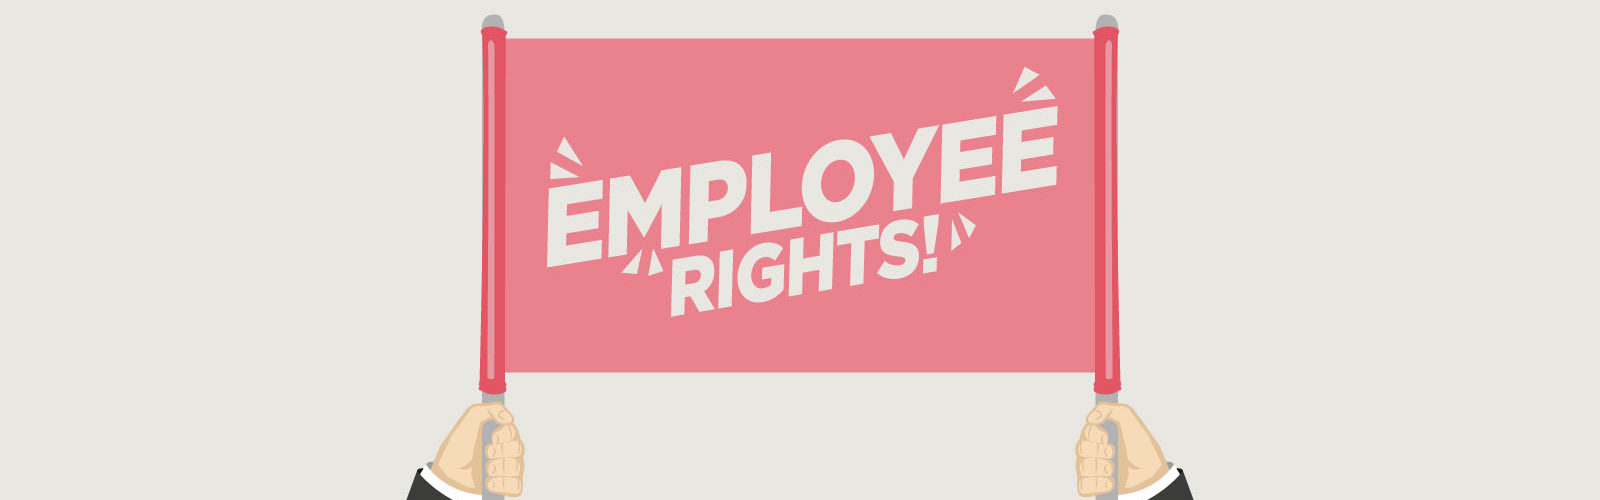 pink employee rights signs - 329146405_web.jpg